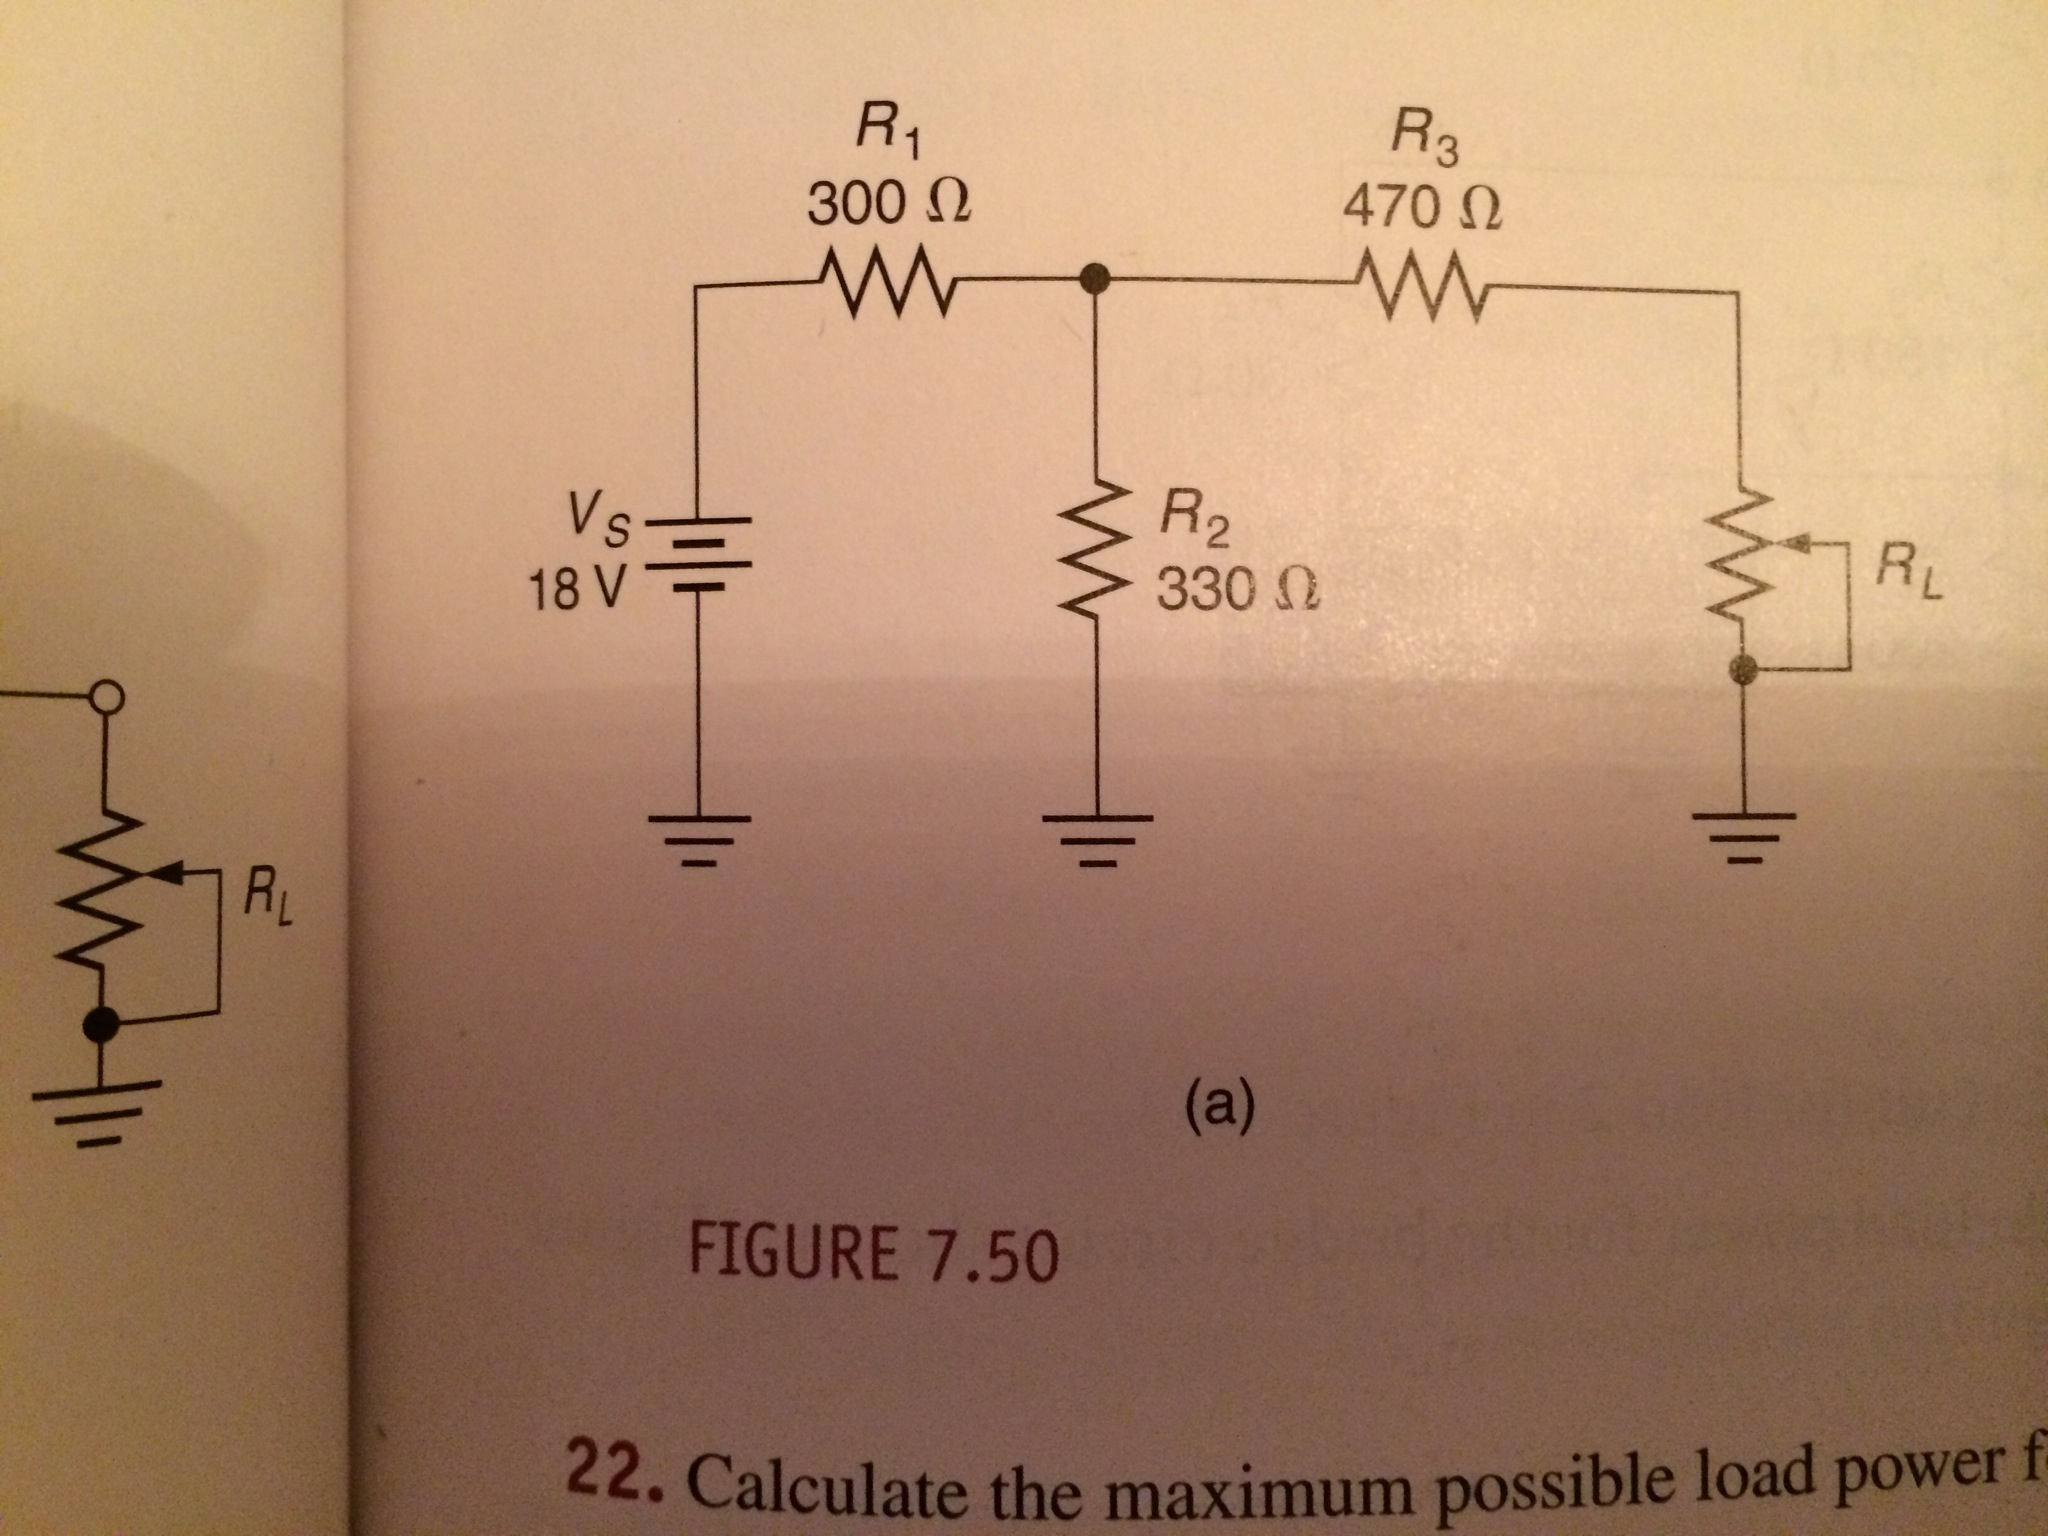 Calculate the maximum possible load power